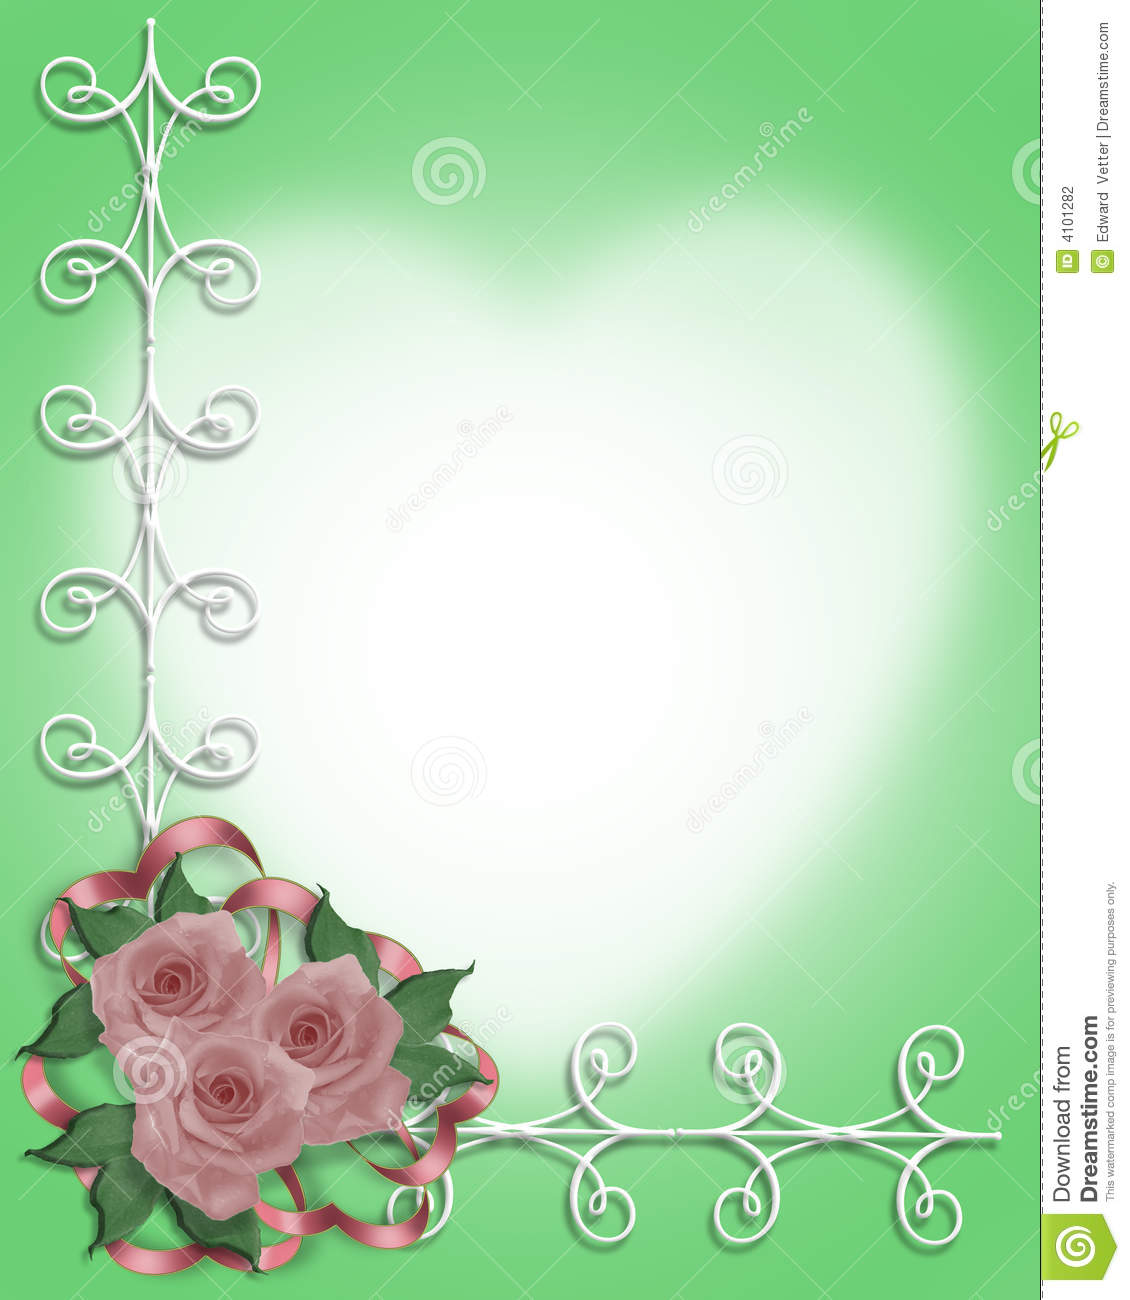 pink roses wedding or party border stock illustration